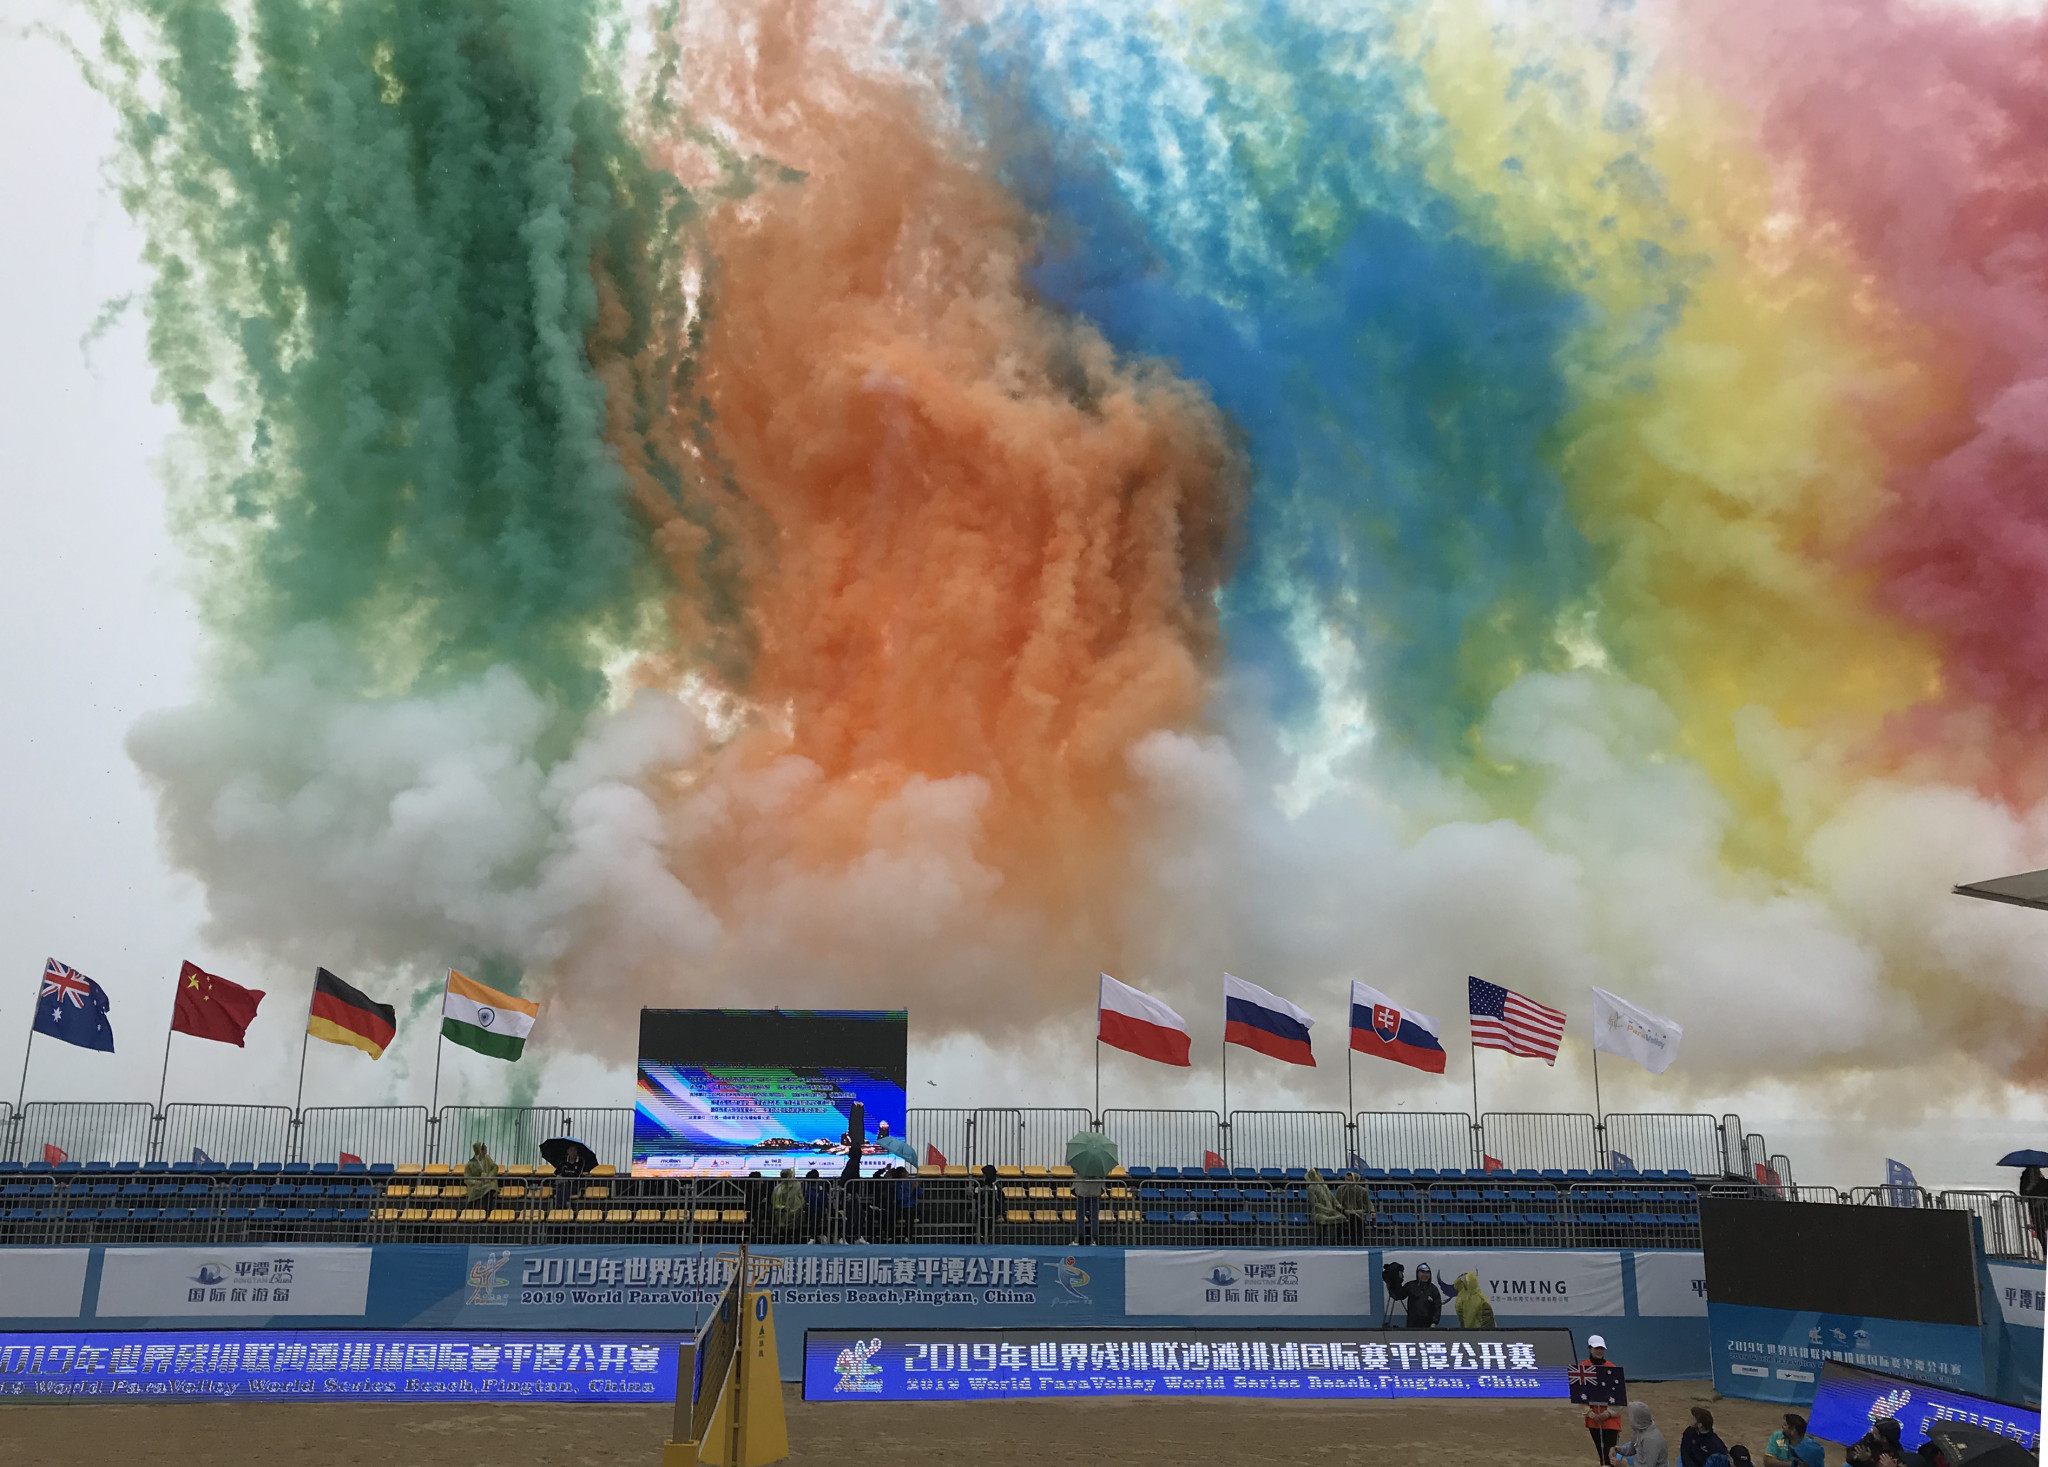 The first Beach ParaVolley World Series Open got underway in colourful fashion with a firework display at Pingtan, China today ©World ParaVolley